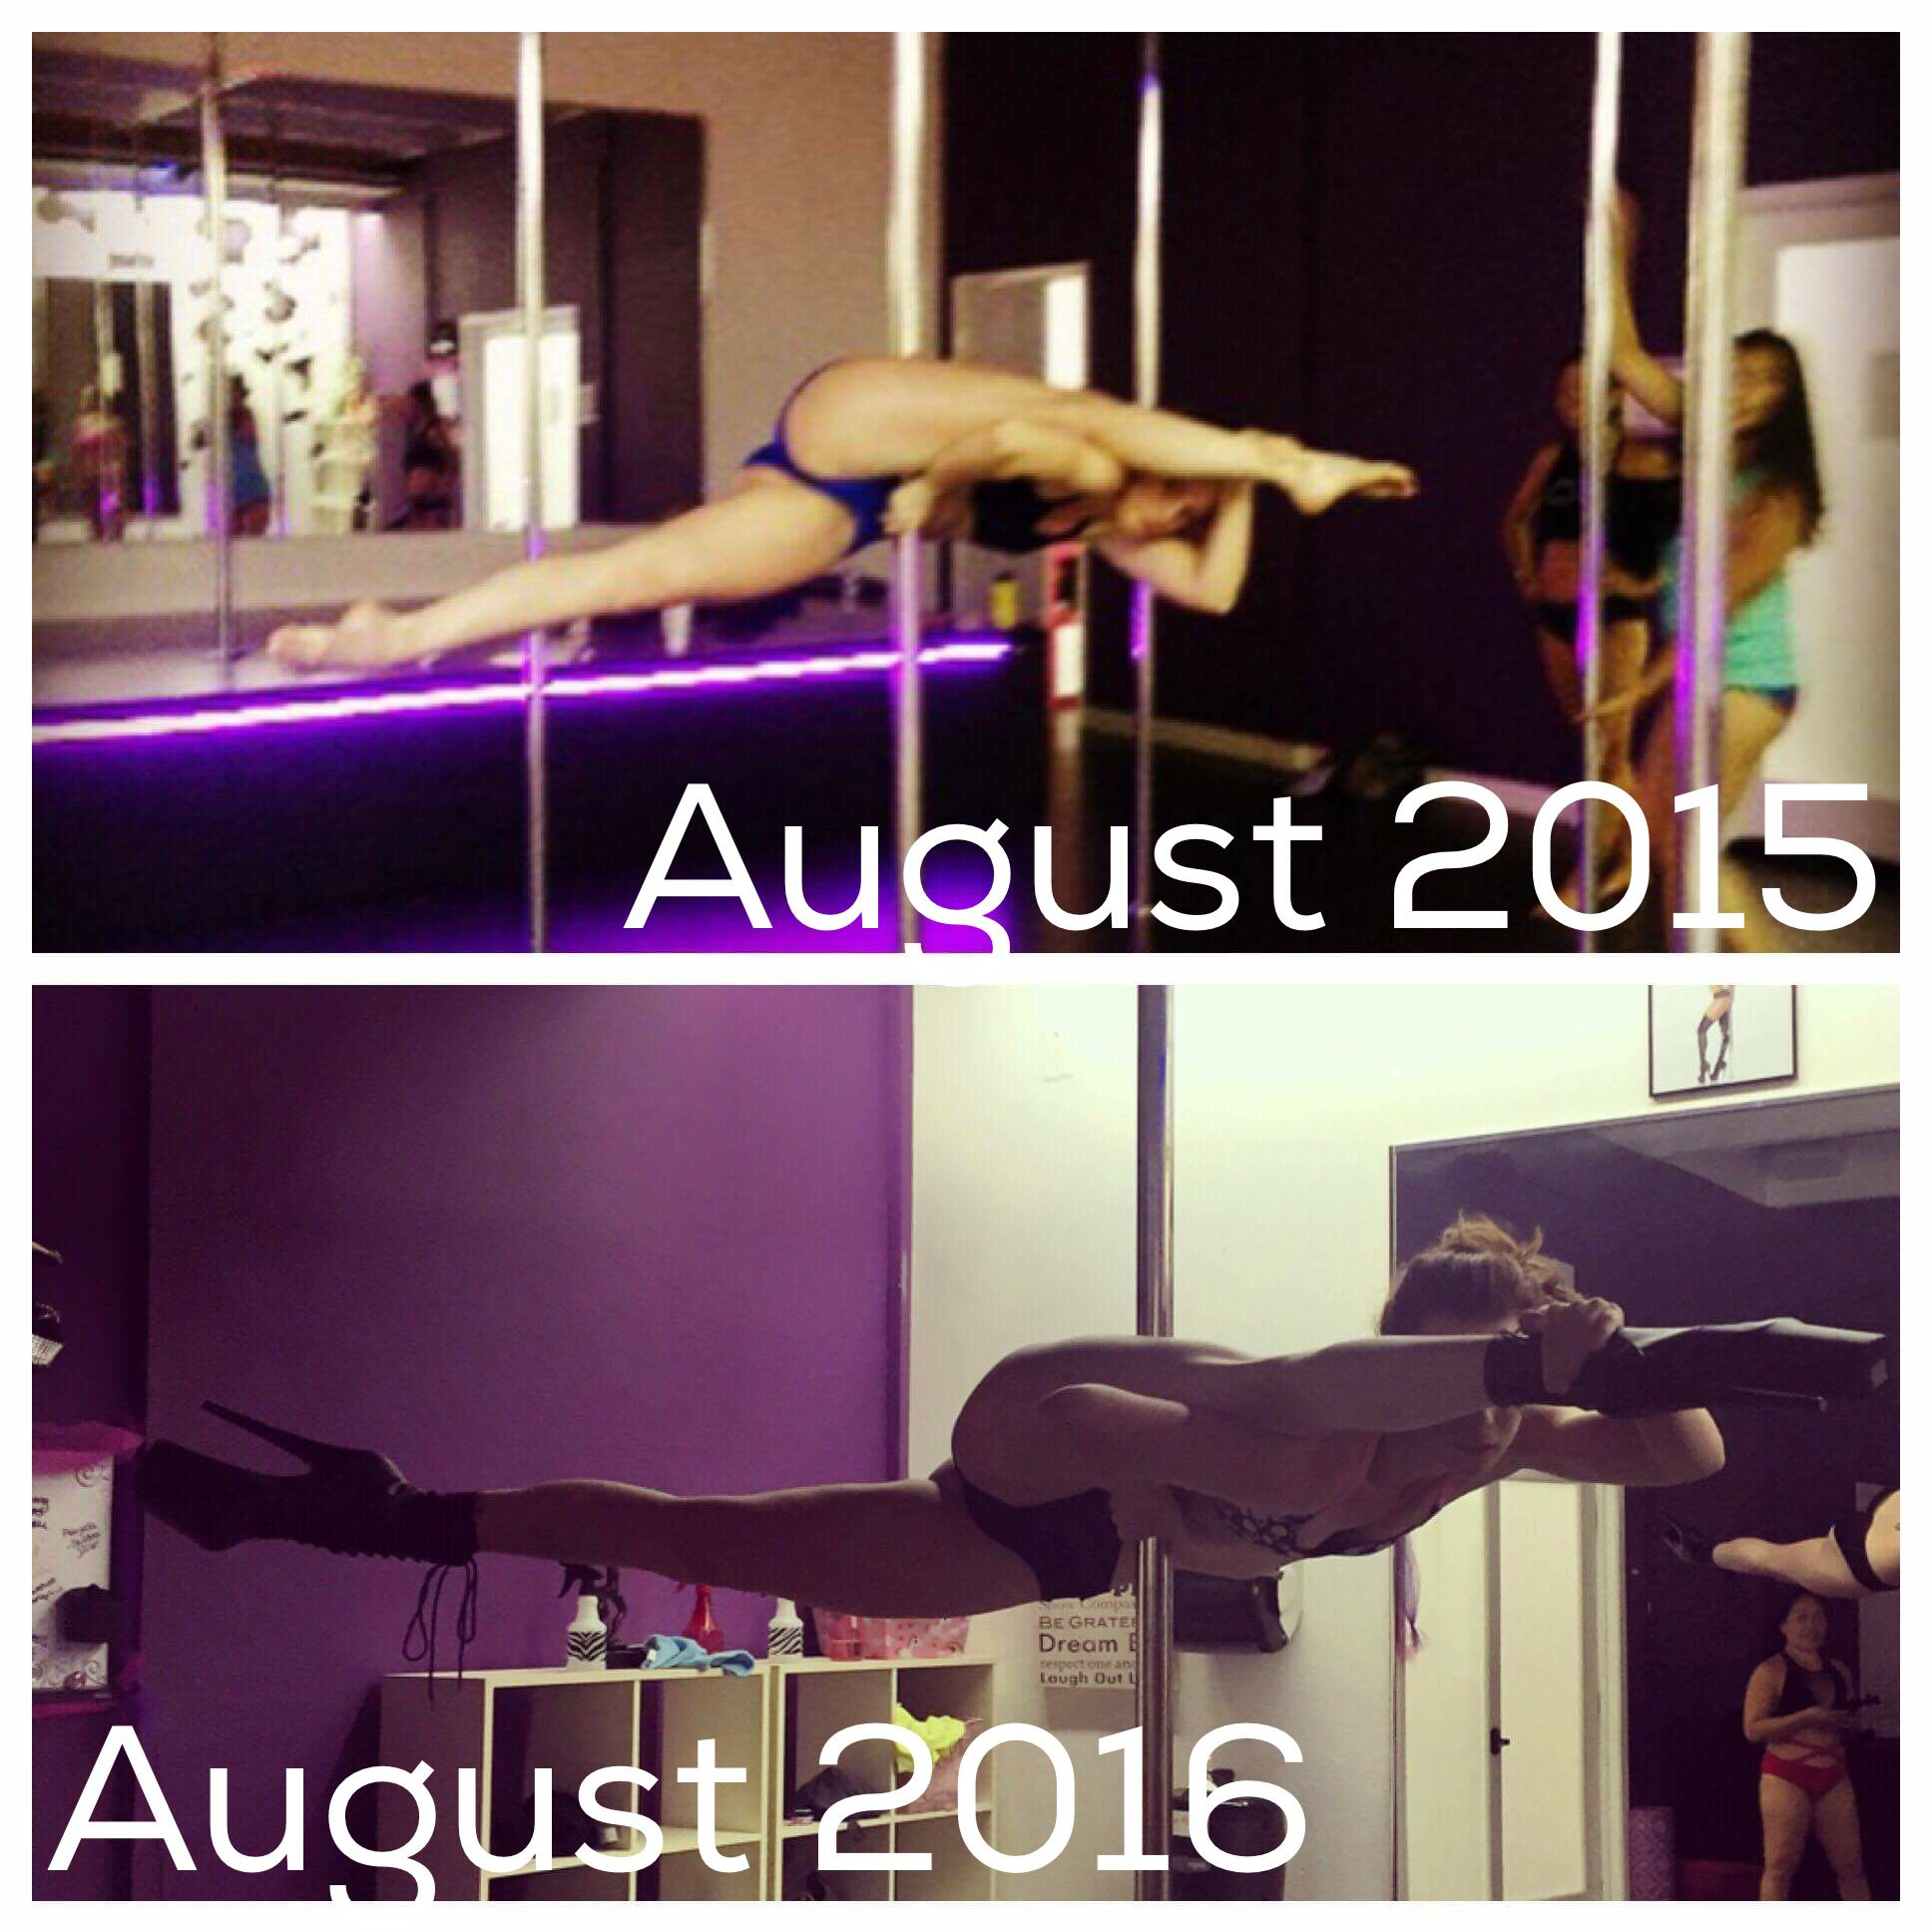 Pin on Doll house pole fitness